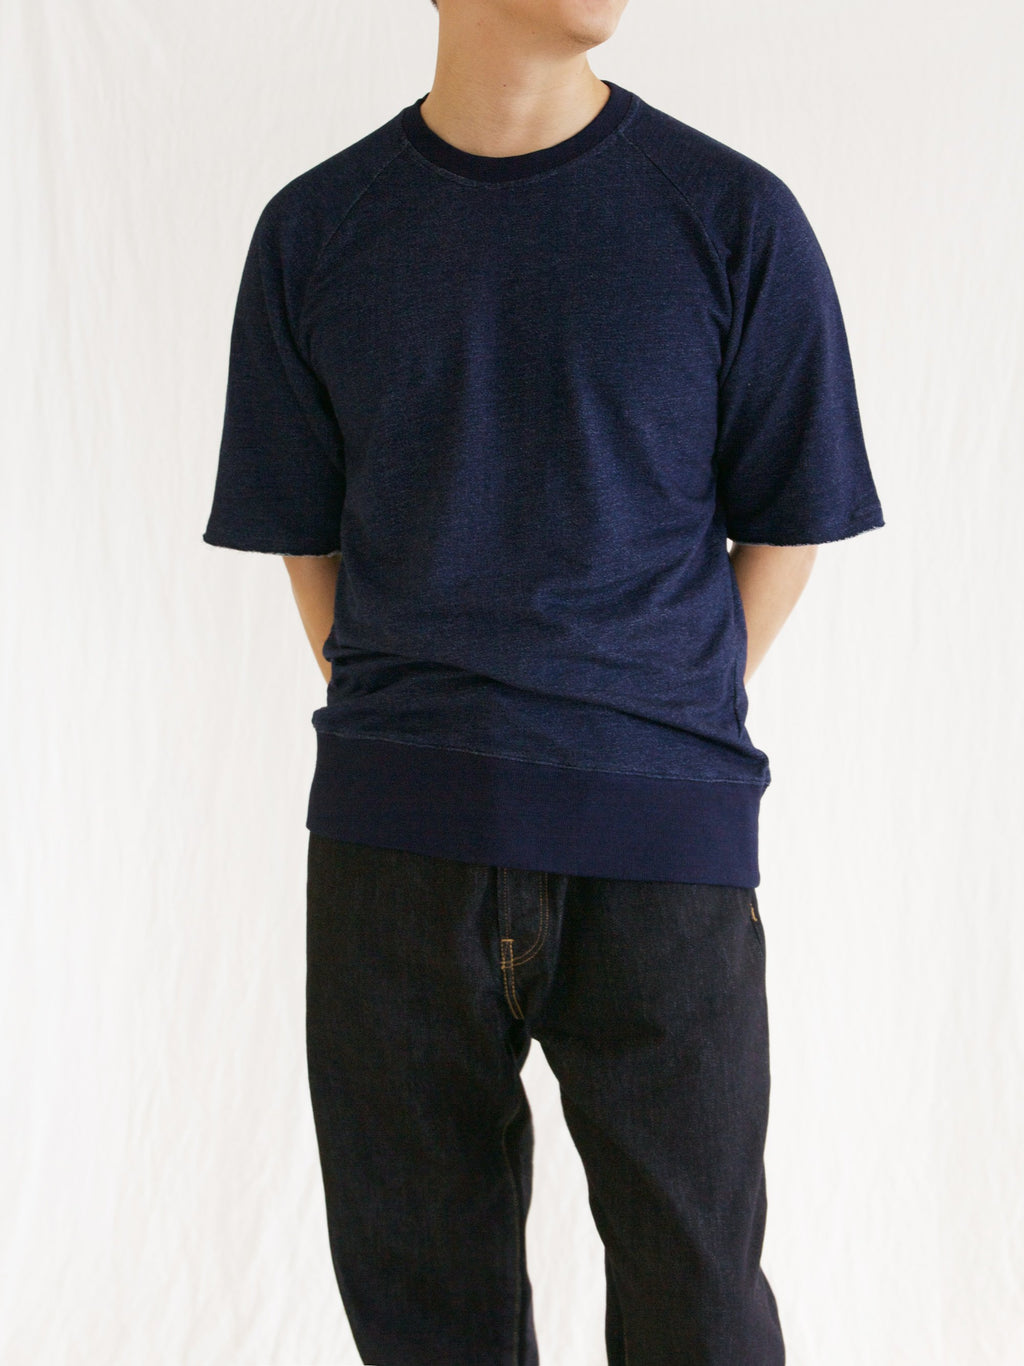 Namu Shop - Document Indigo Sweat Jersey (Re-stock)